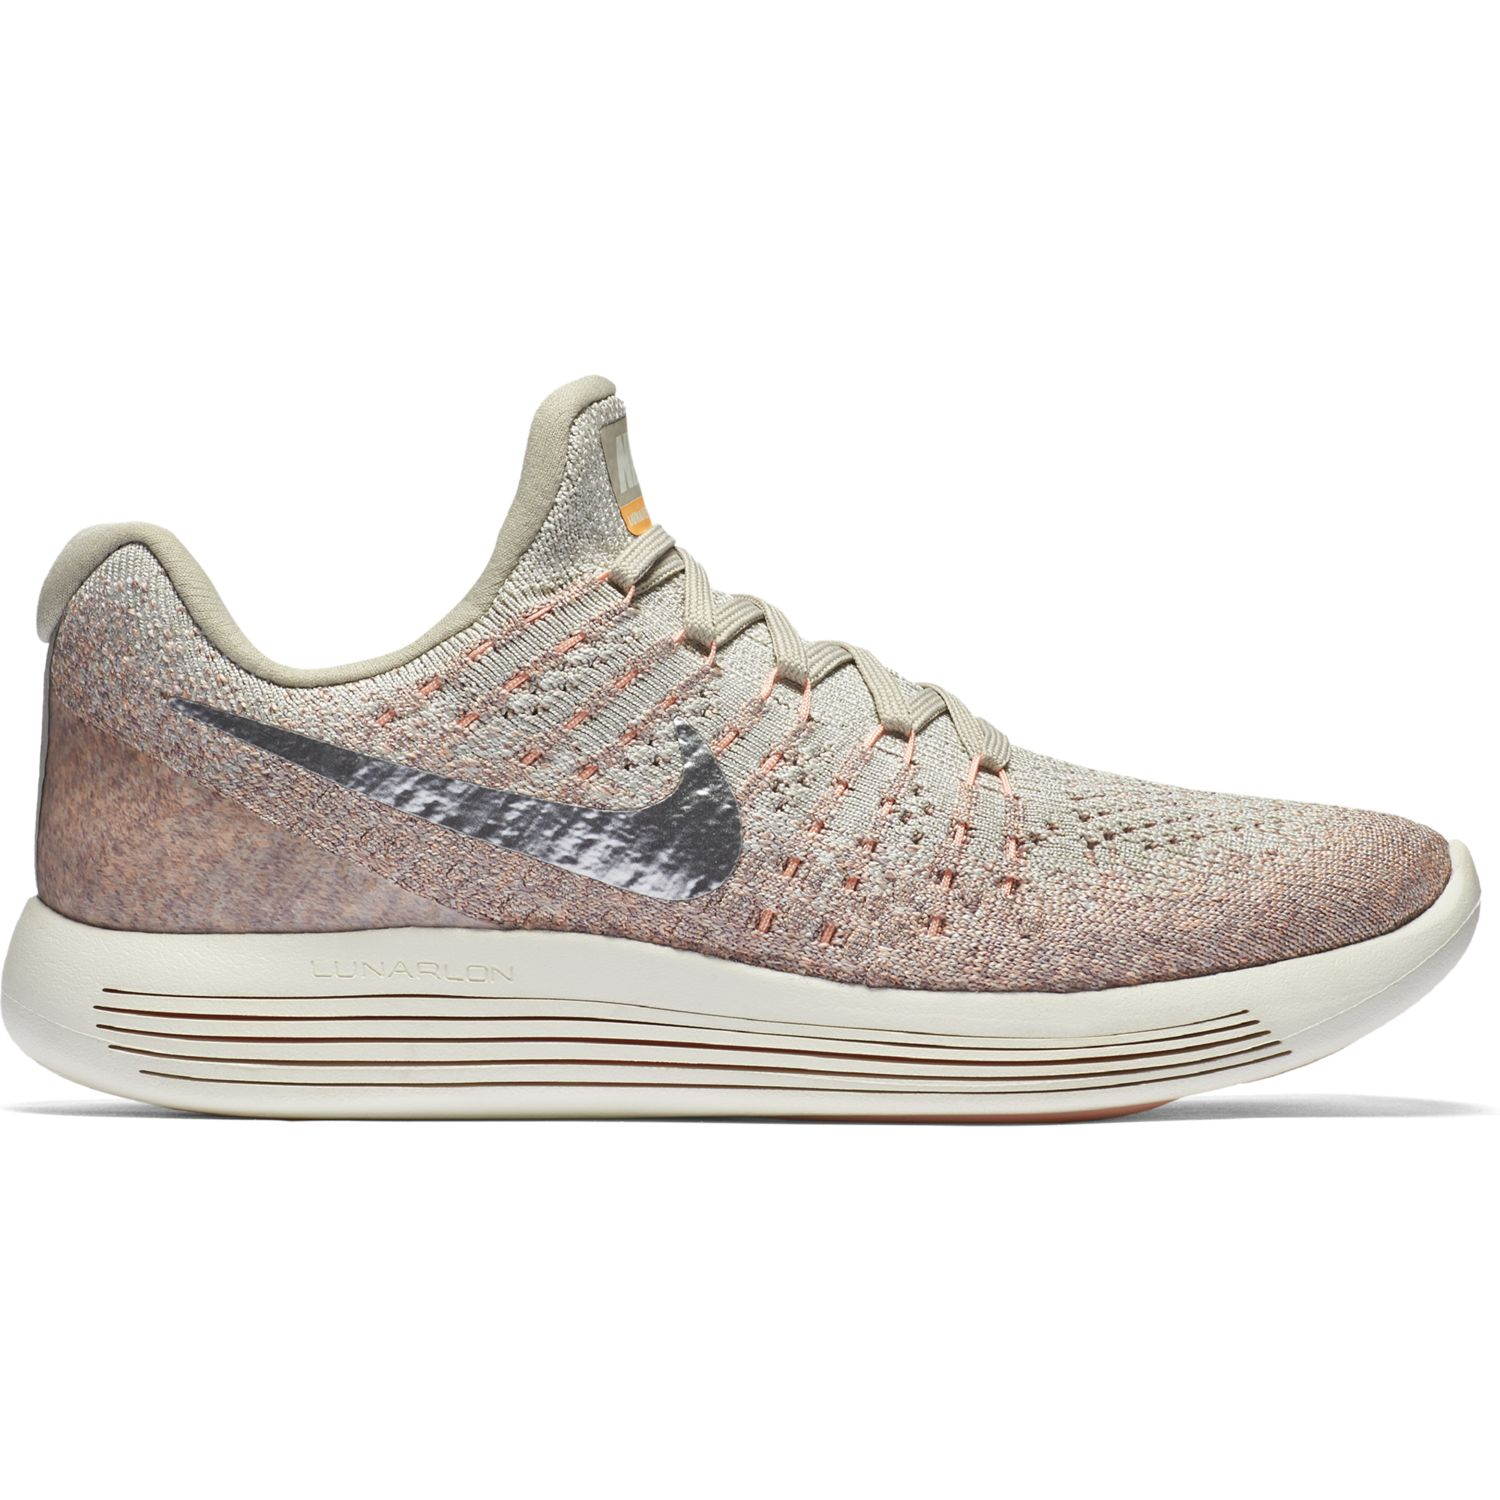 Nike Lady LunarEpic low Flyknit 2 in Grau Silber